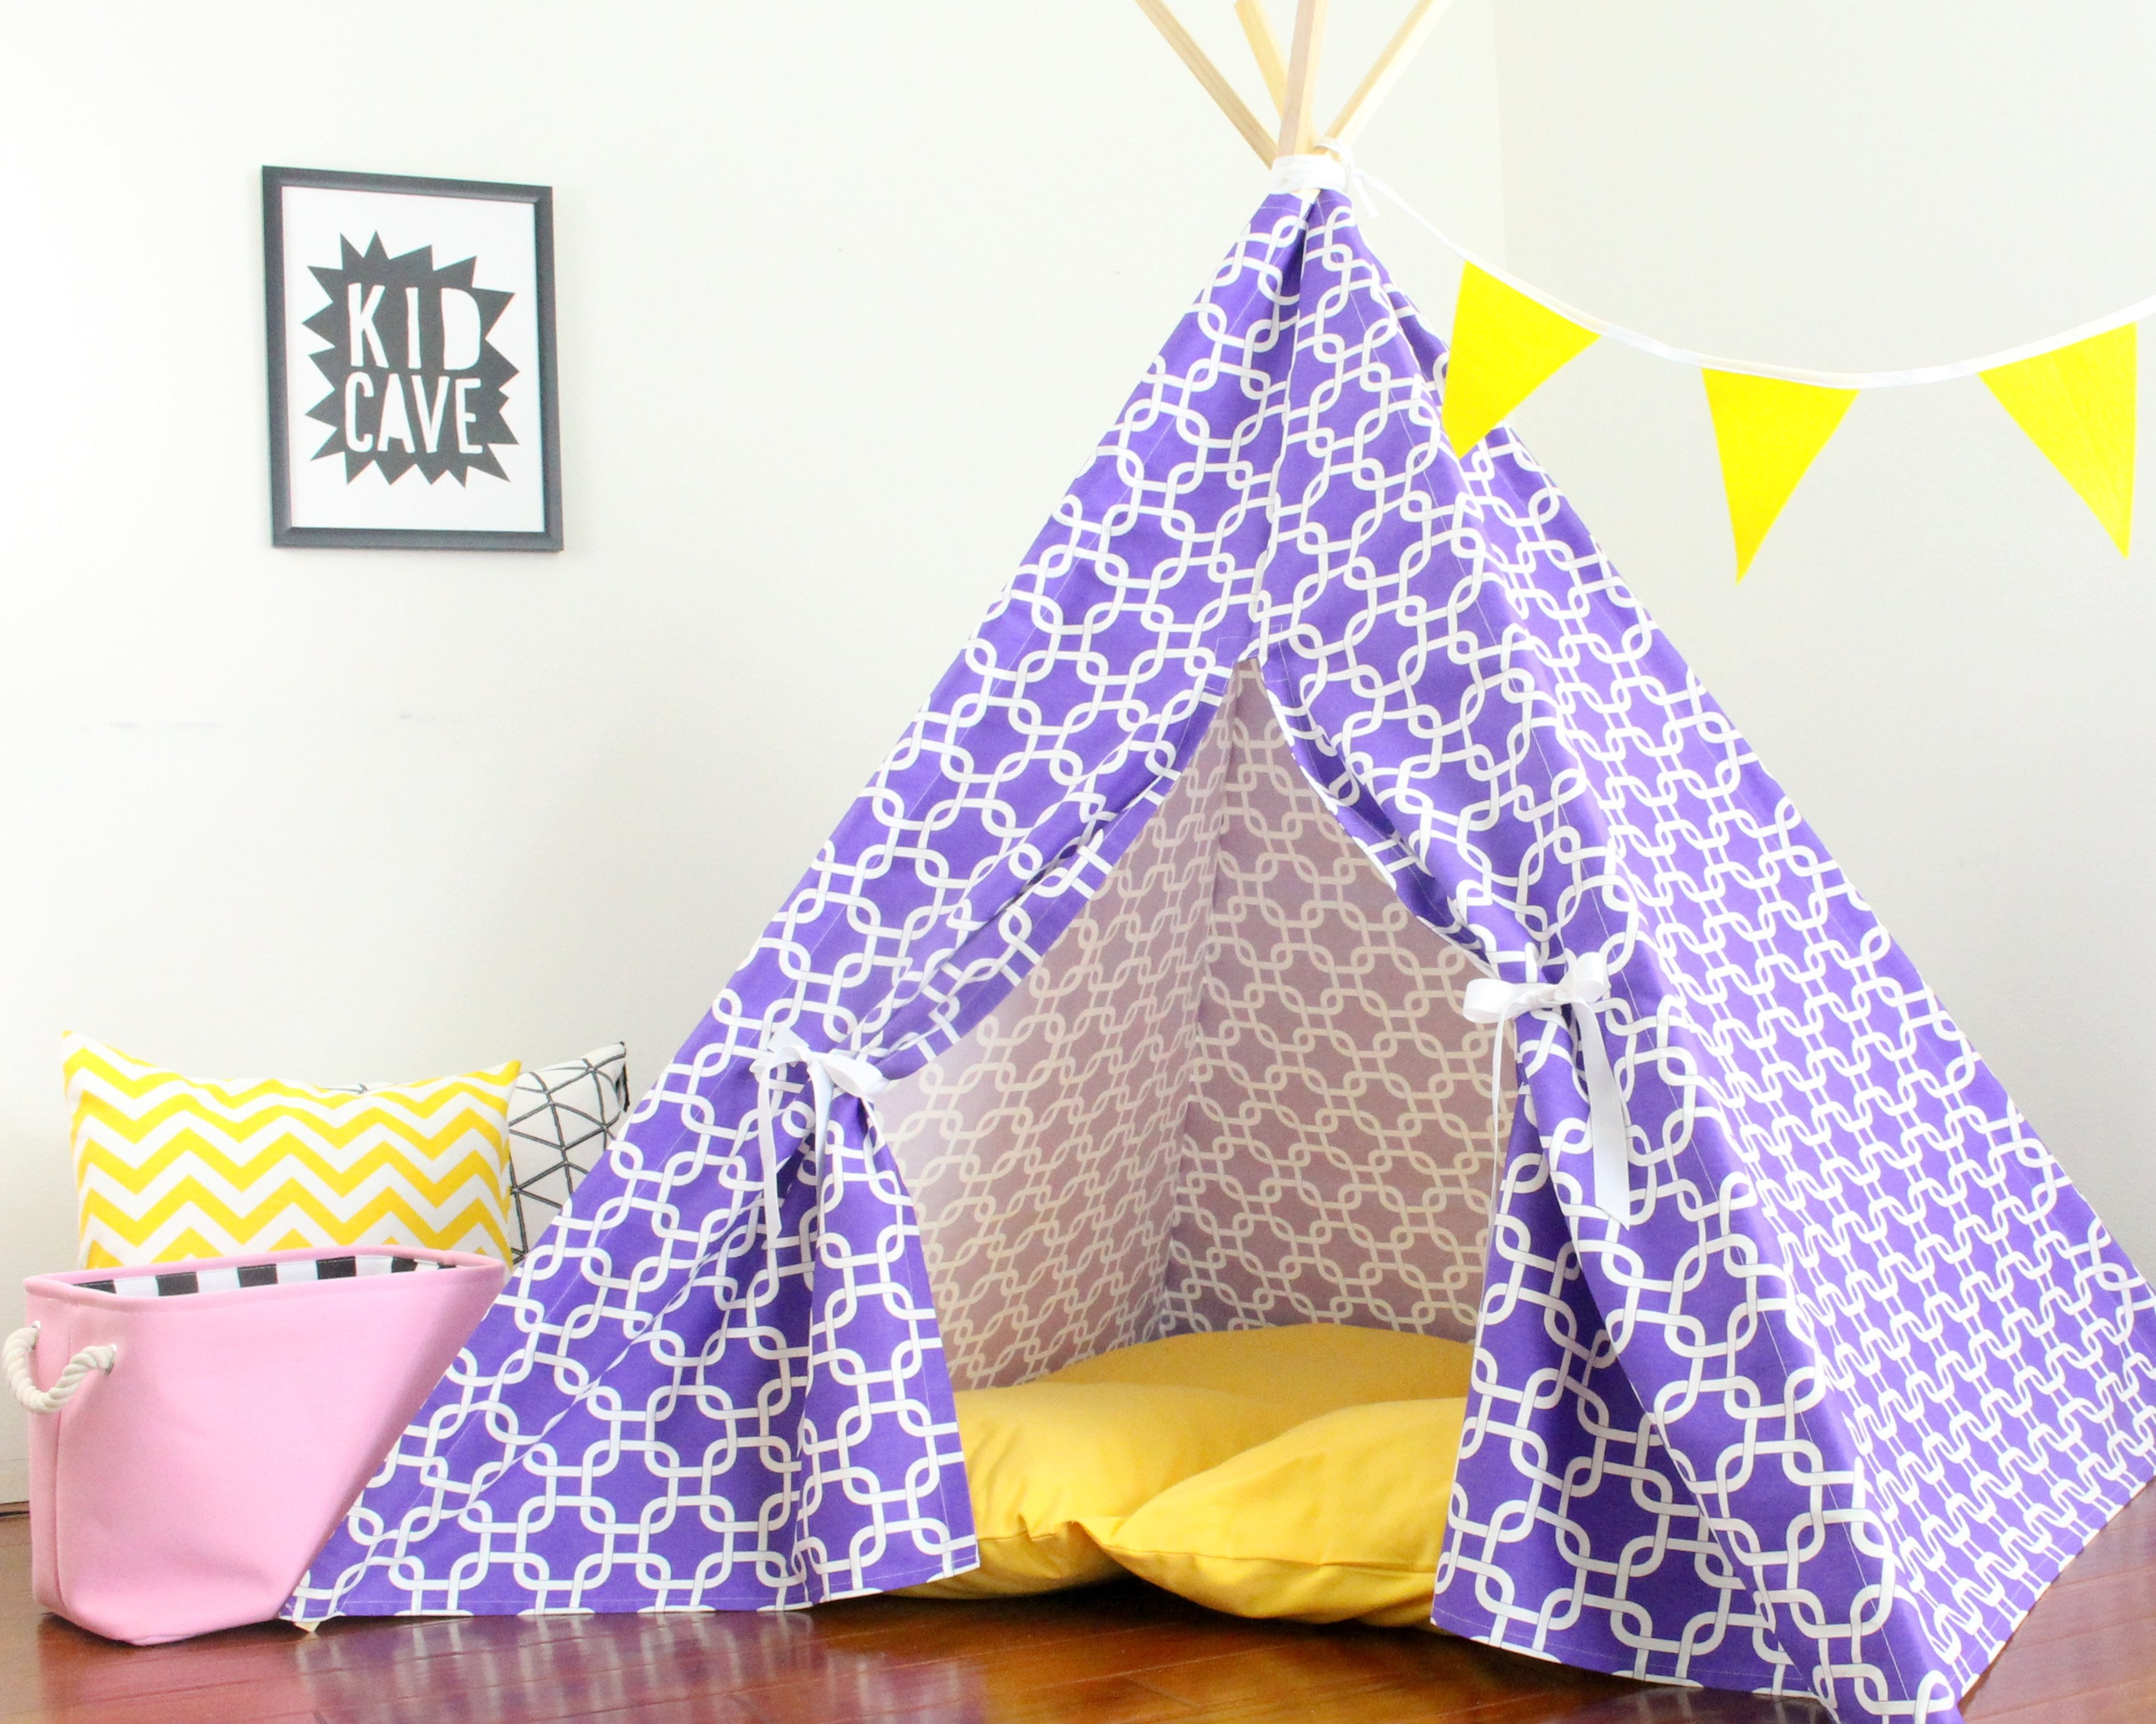 ... Kids Teepee Play Tent Sewing Pattern Suitable for all fabric prints ...  sc 1 st  The Playhouse Kid & Kids Teepee Play Tent Sewing Pattern Suitable for all fabric ...